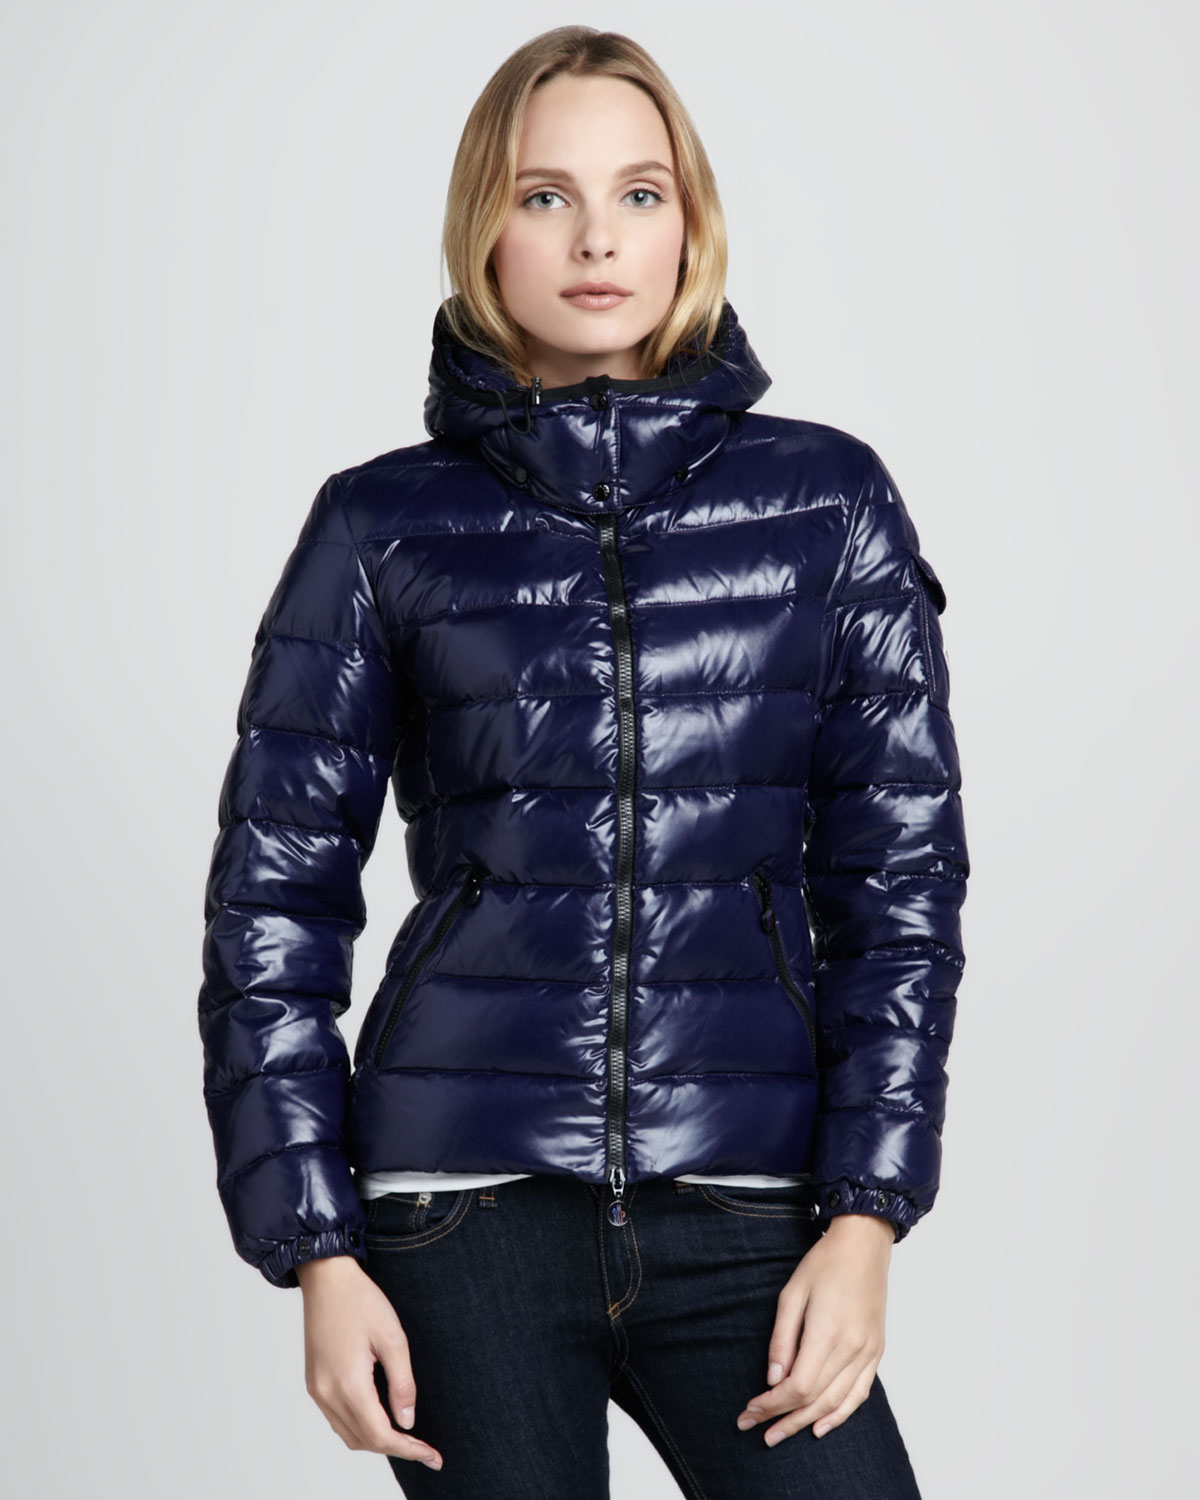 moncler bady black jacket